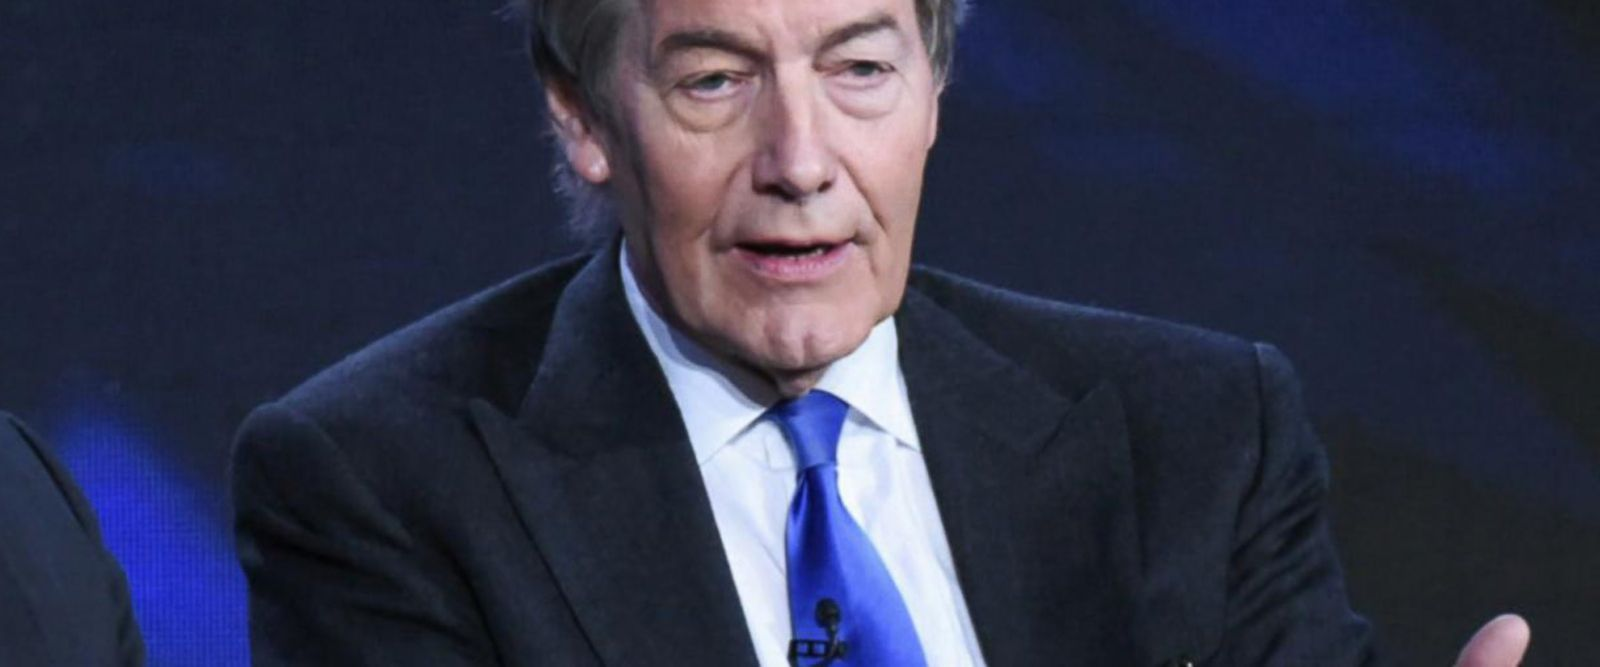 VIDEO: Charlie Rose fired from CBS following sexual misconduct allegations